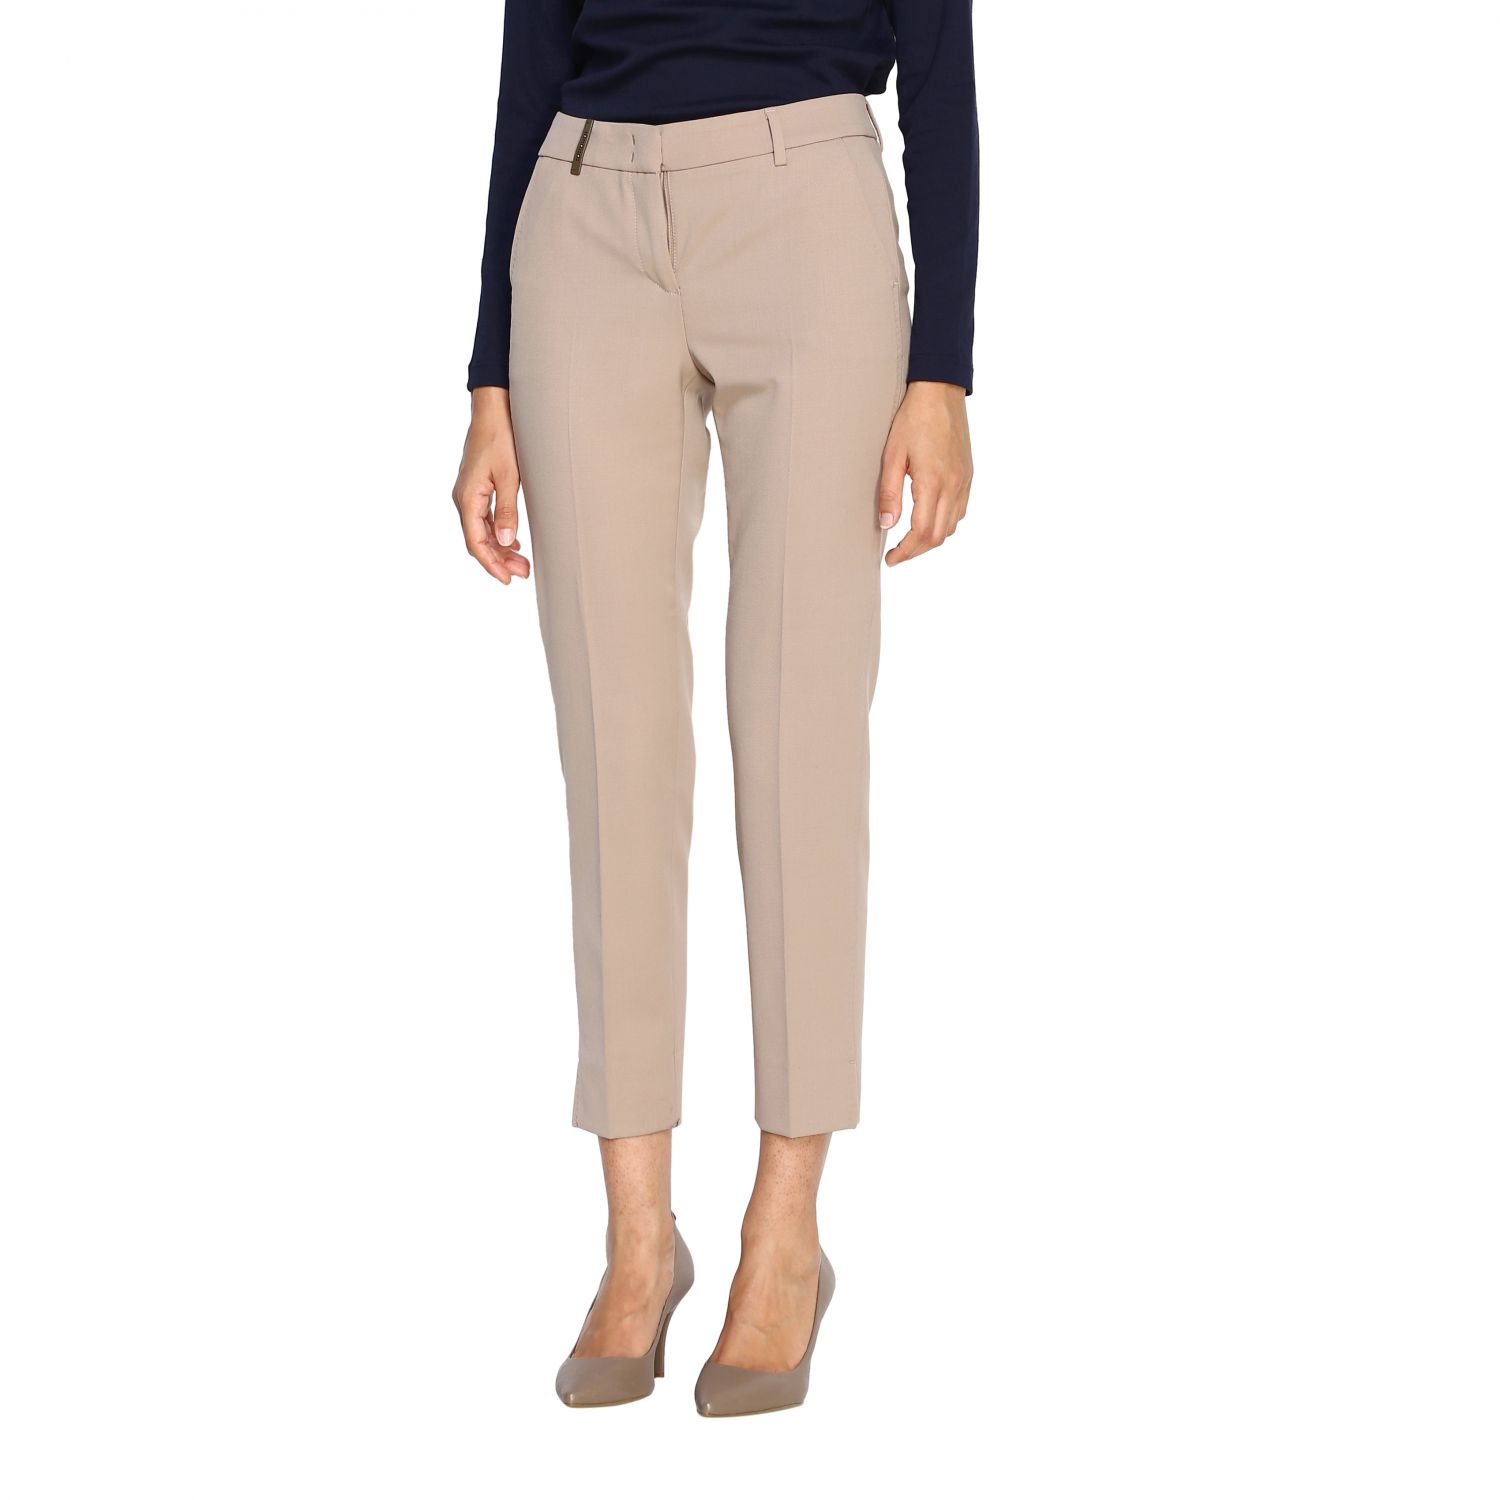 Pants women Peserico hazel 4